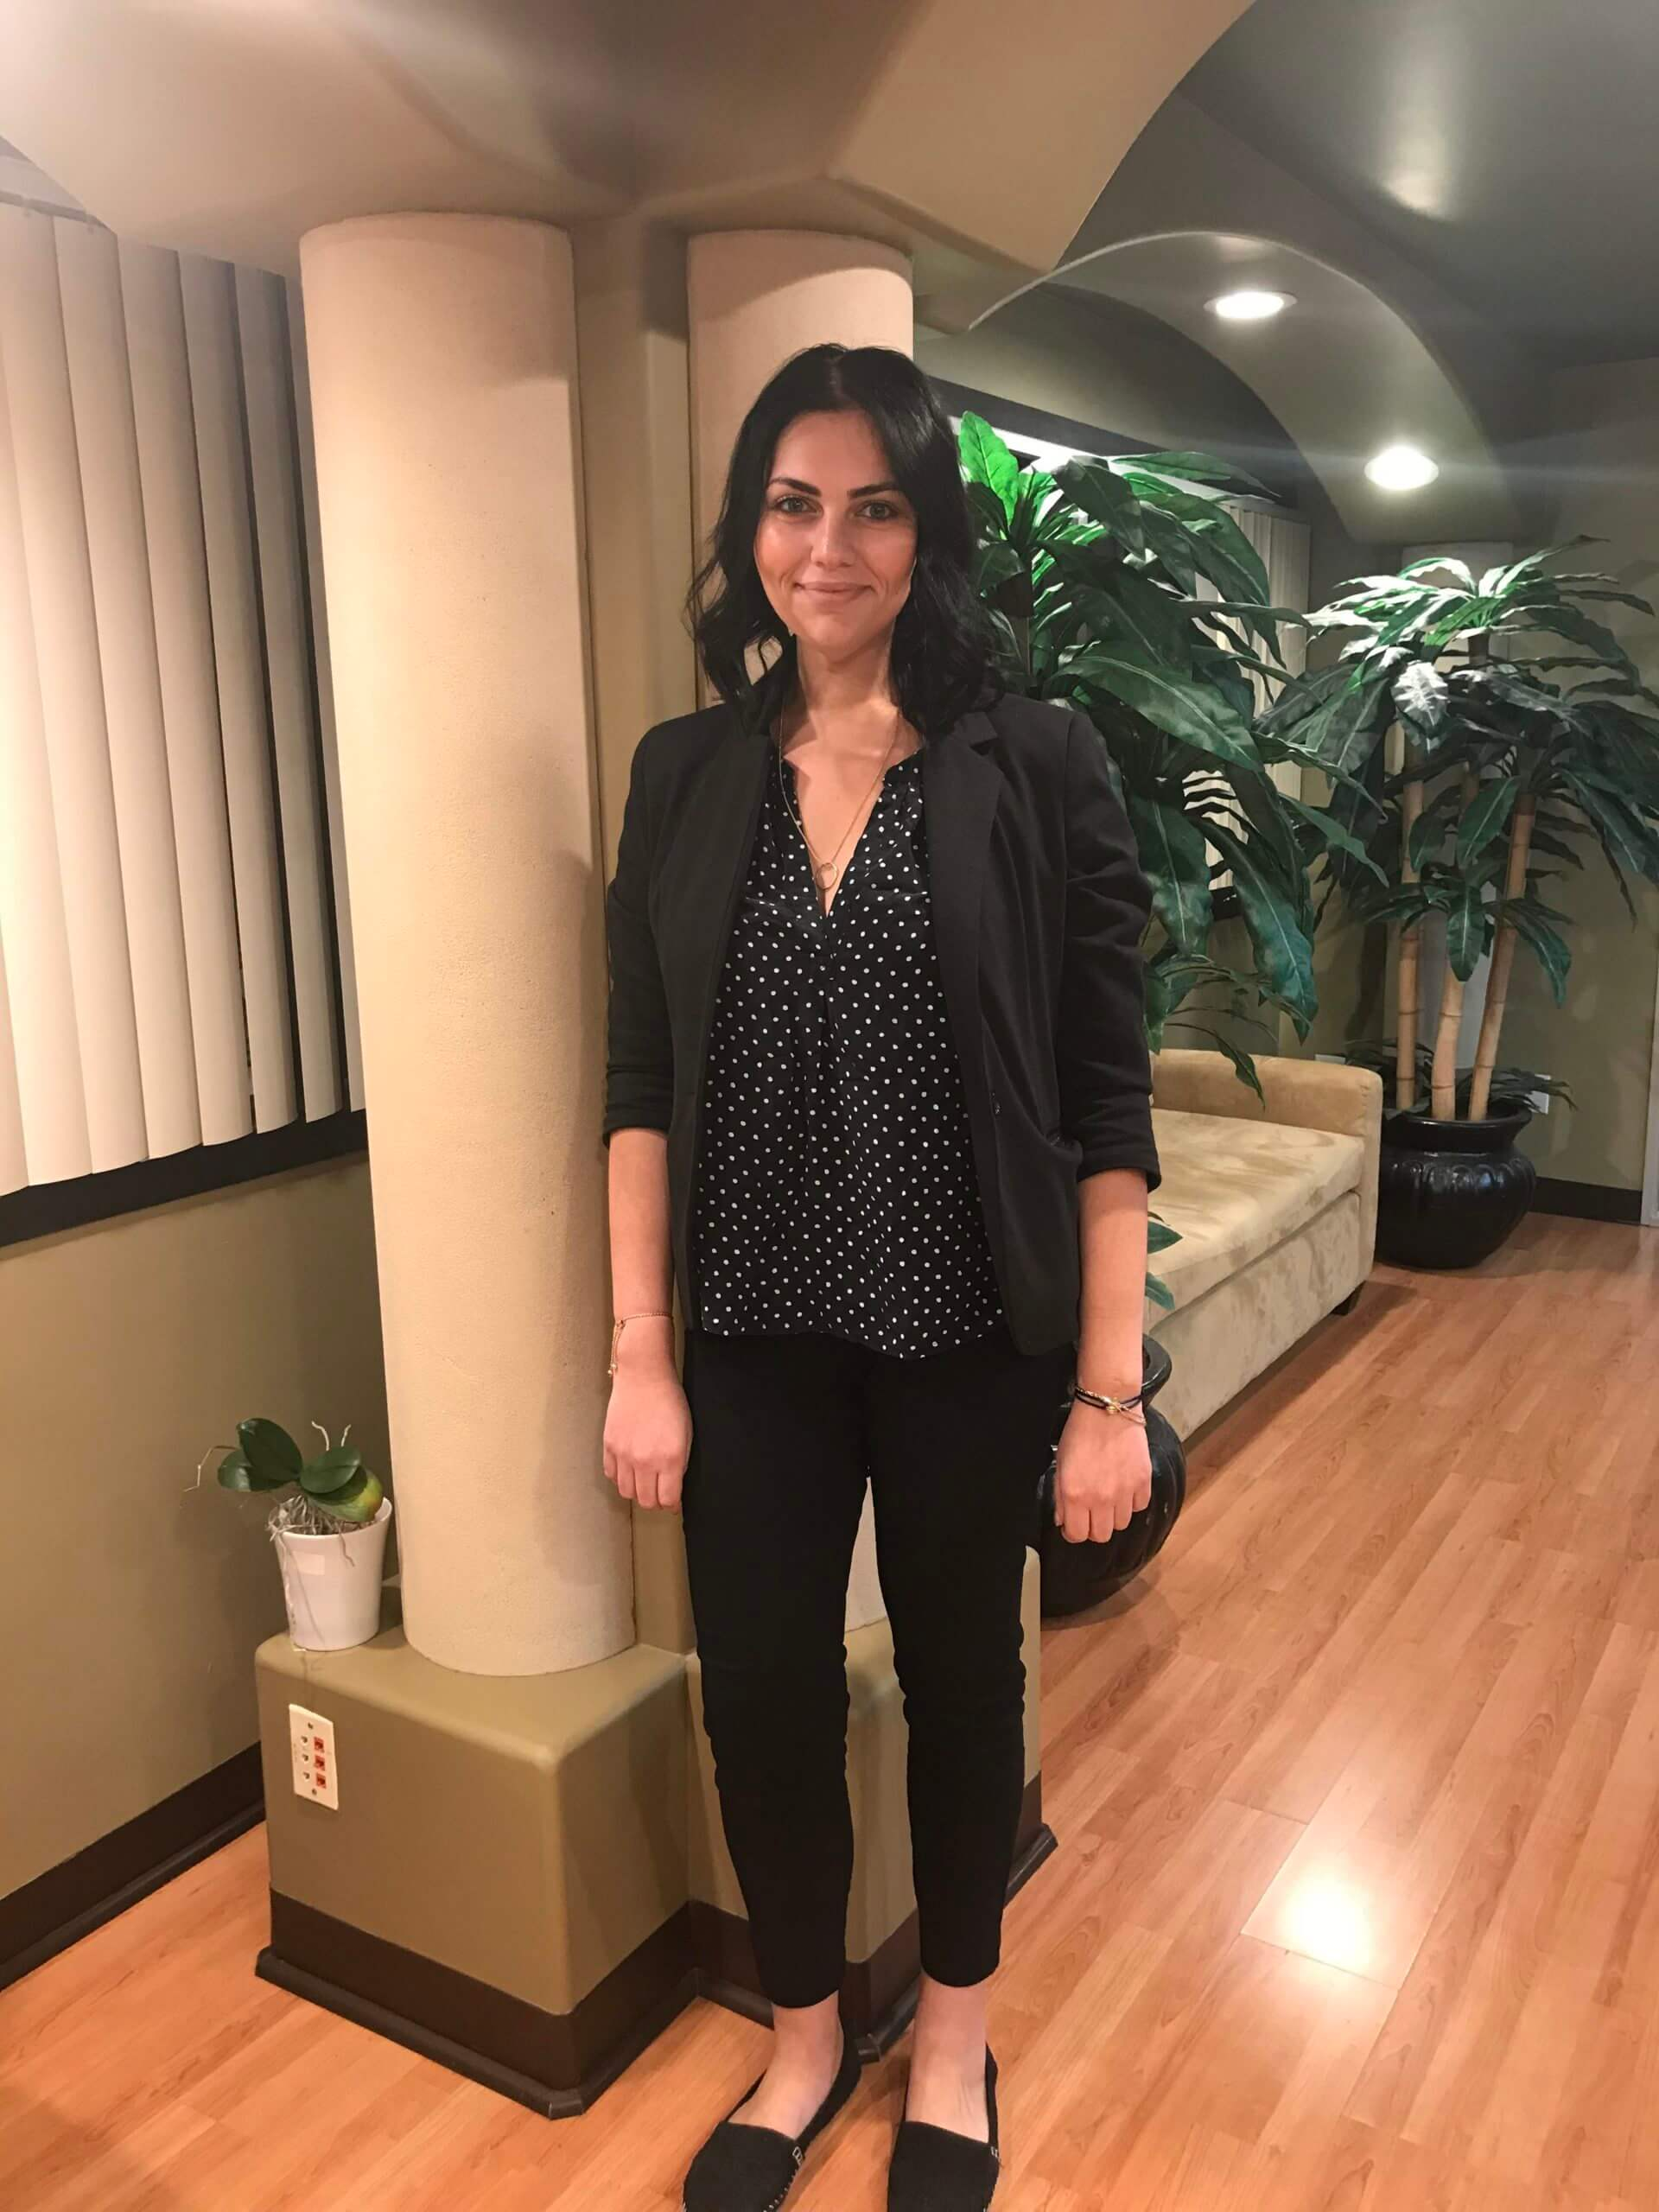 AT-Bariatric-Surgery-Lap-Band-System-10-year-transformation-At-Davtyan-Medical-Weight-Loss-And-Wellness-In-Los-Angeles-Glendale-Beverly-Hills-Rancho-Cucamonga